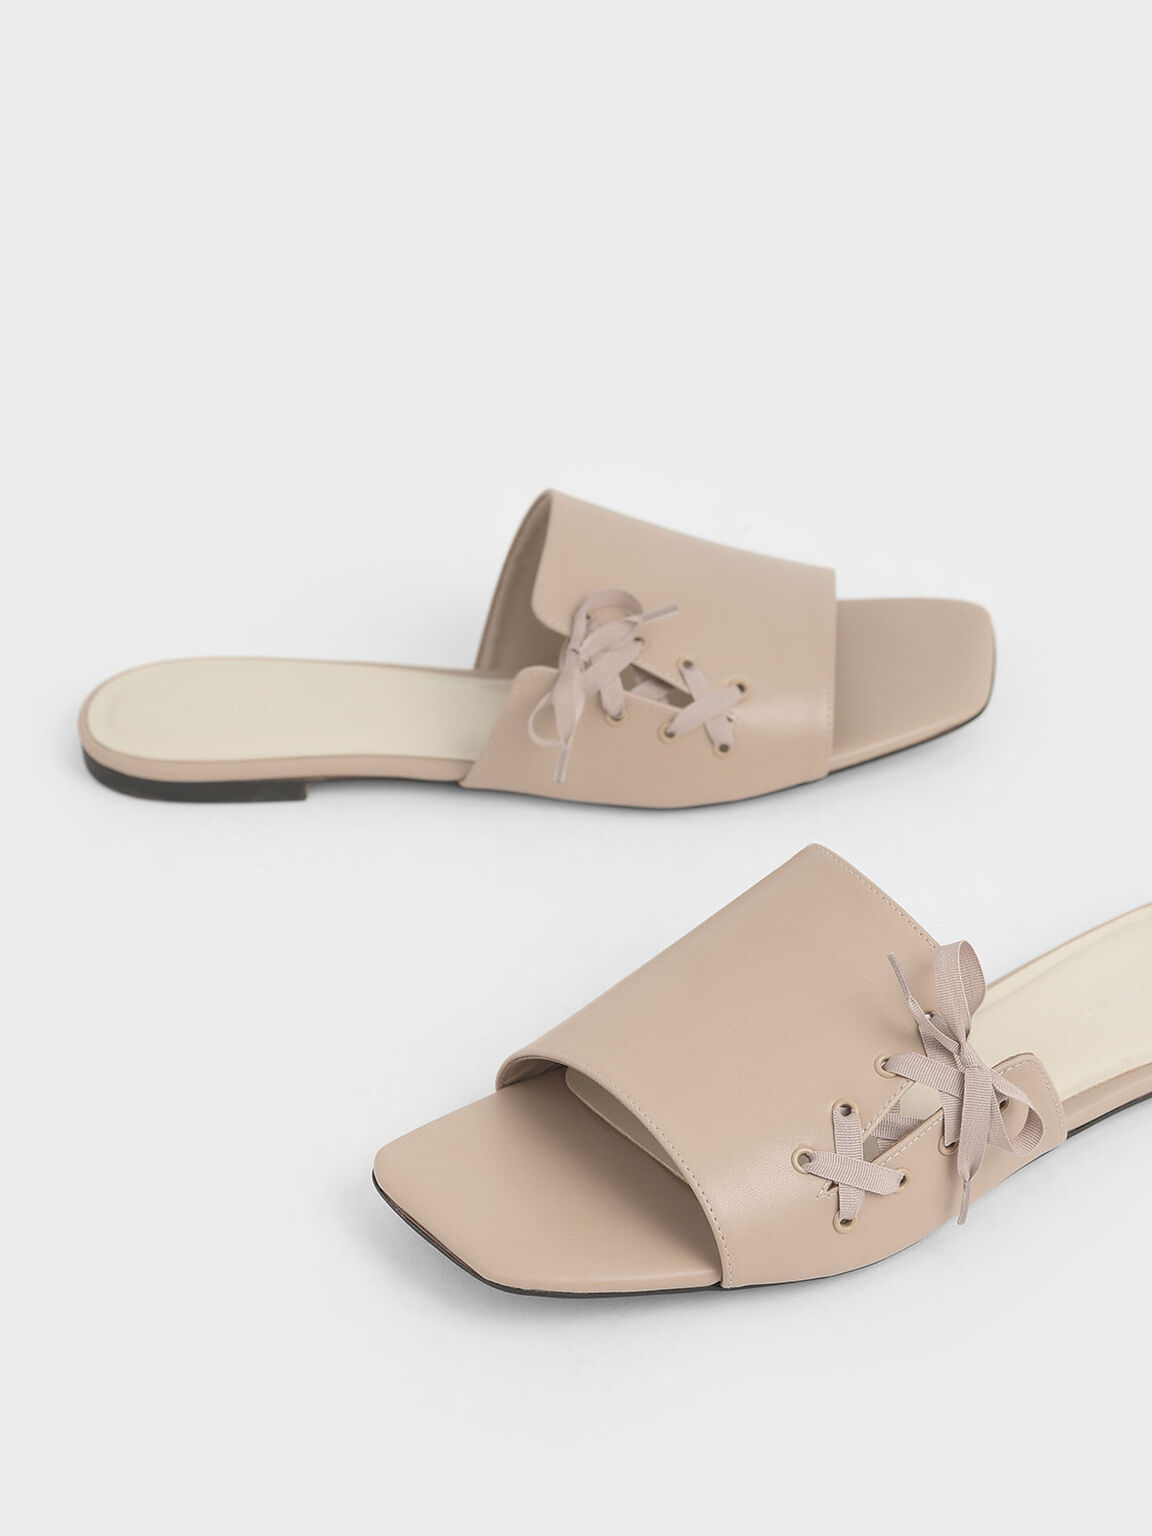 Ribbon Tie Slide Sandals, Beige, hi-res